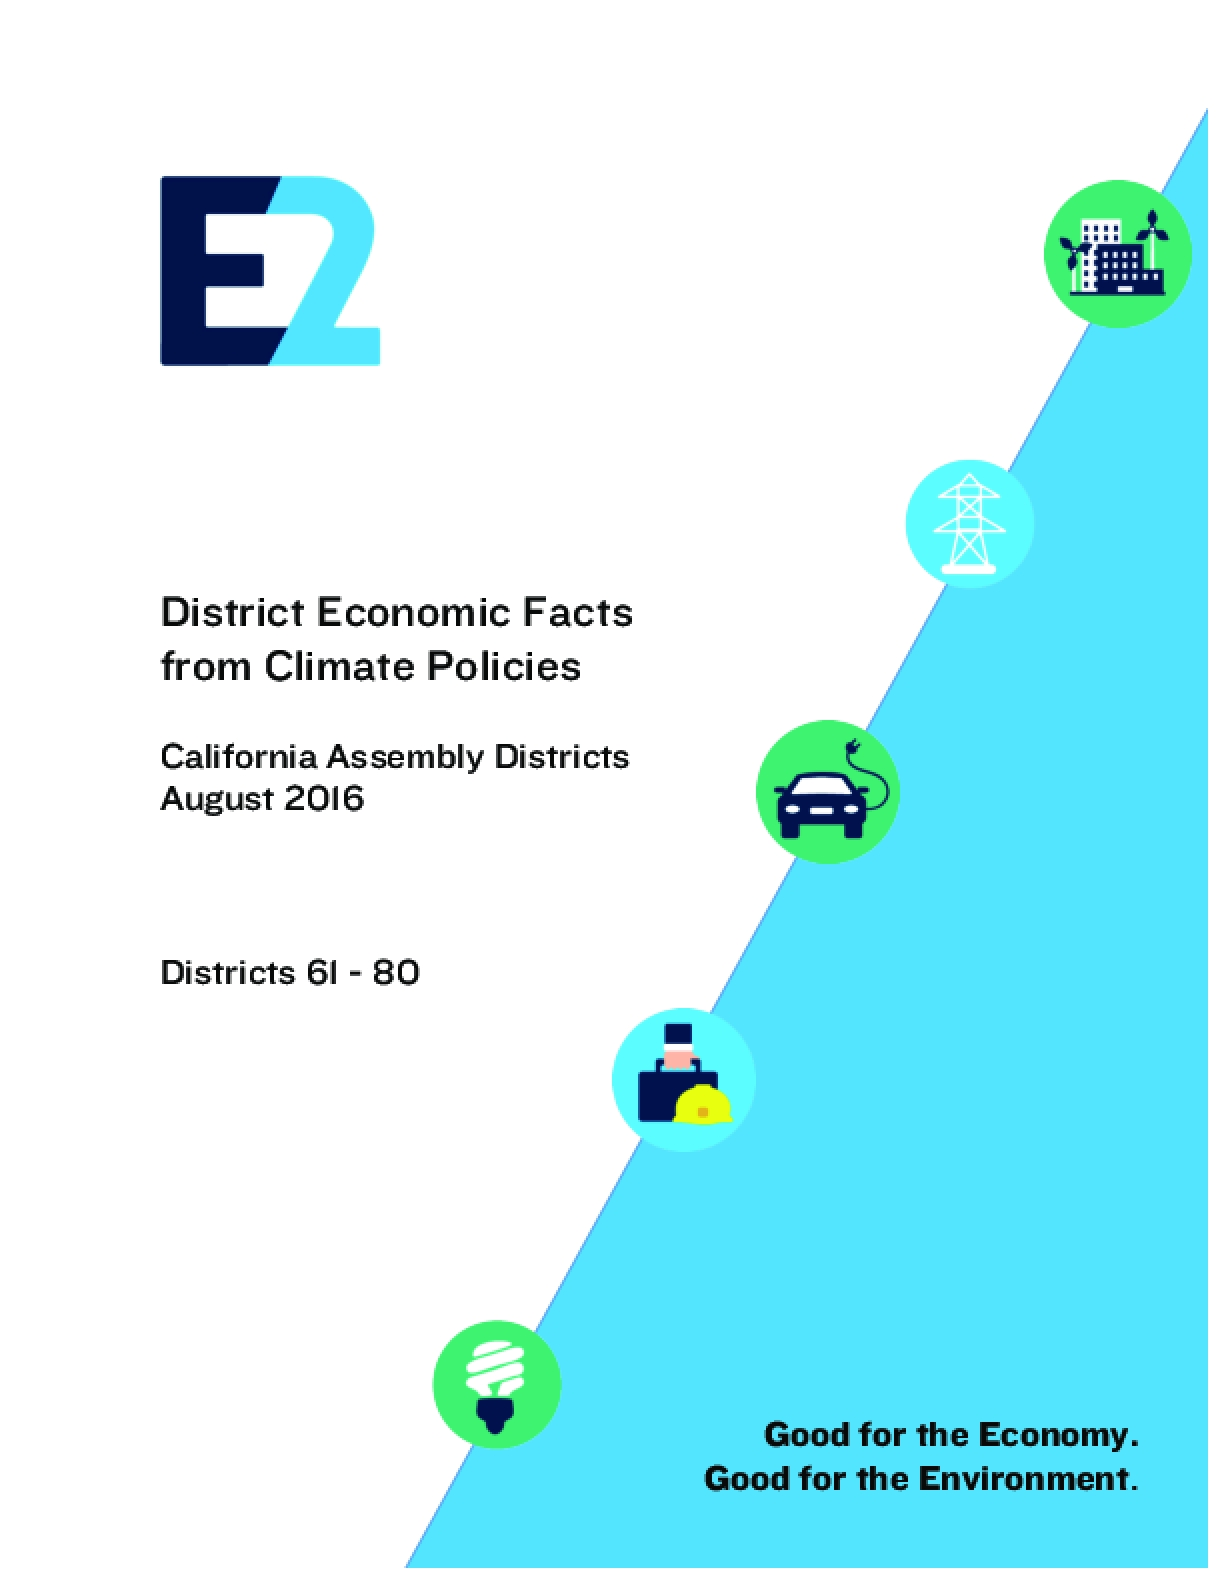 District Economic Facts from Climate Policies: California Assembly Districts 61 - 80